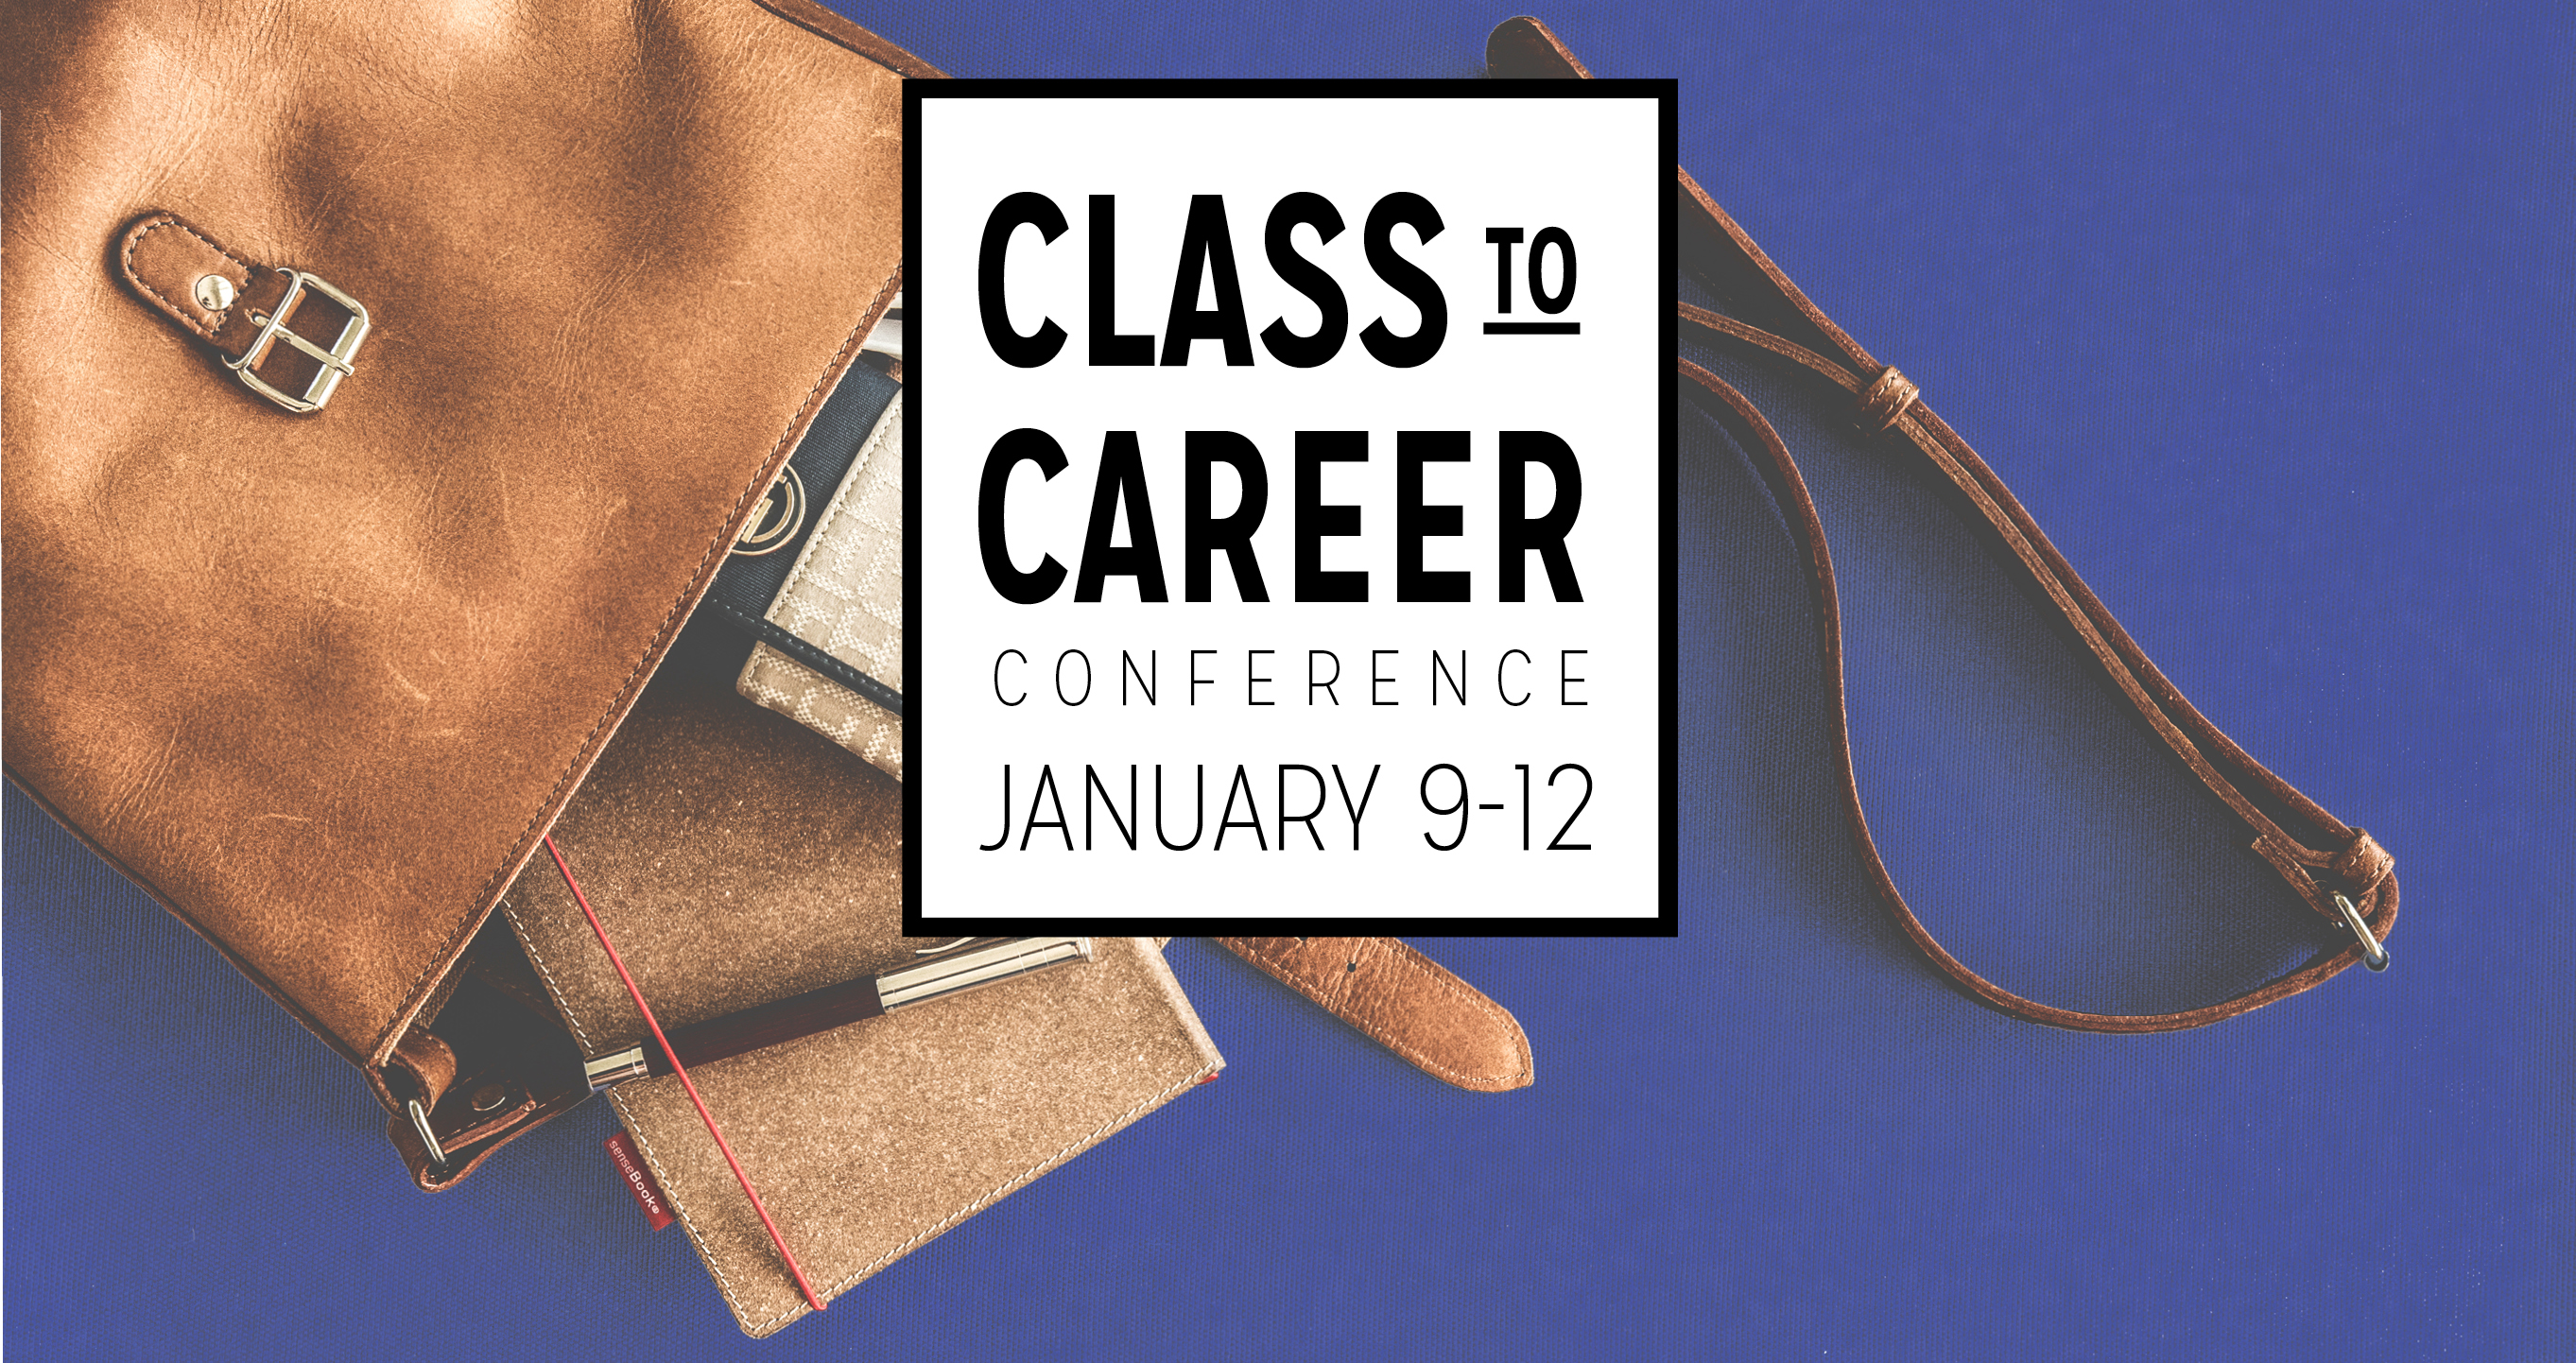 Image of messenger bag with notebook and phone spilling out with text Class to Career Conference January 9-12